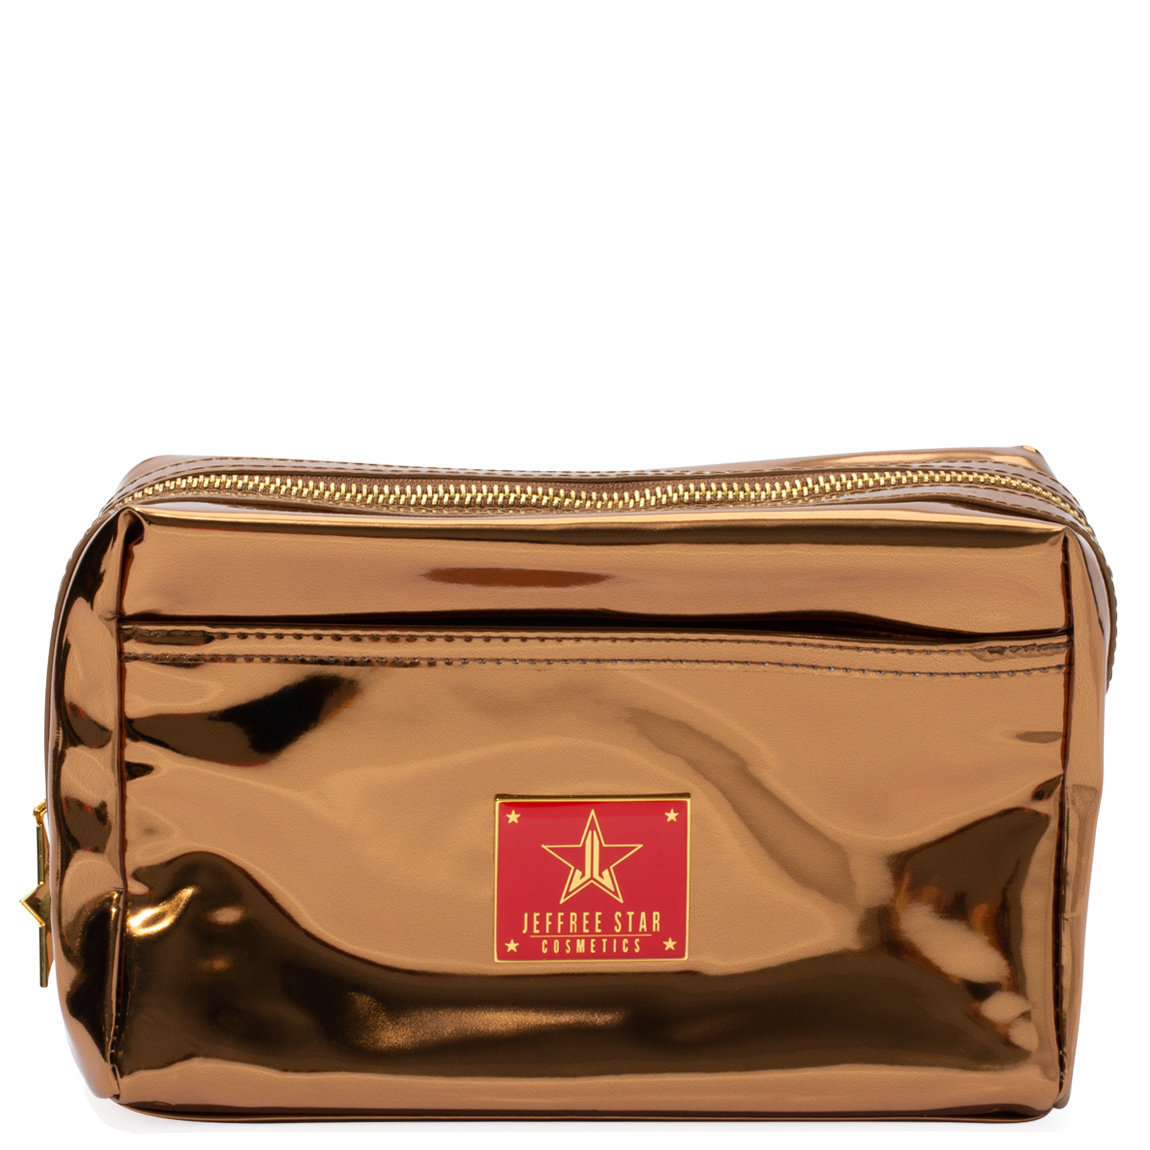 Jeffree Star Cosmetics Makeup Bag Reflective Copper alternative view 1 - product swatch.